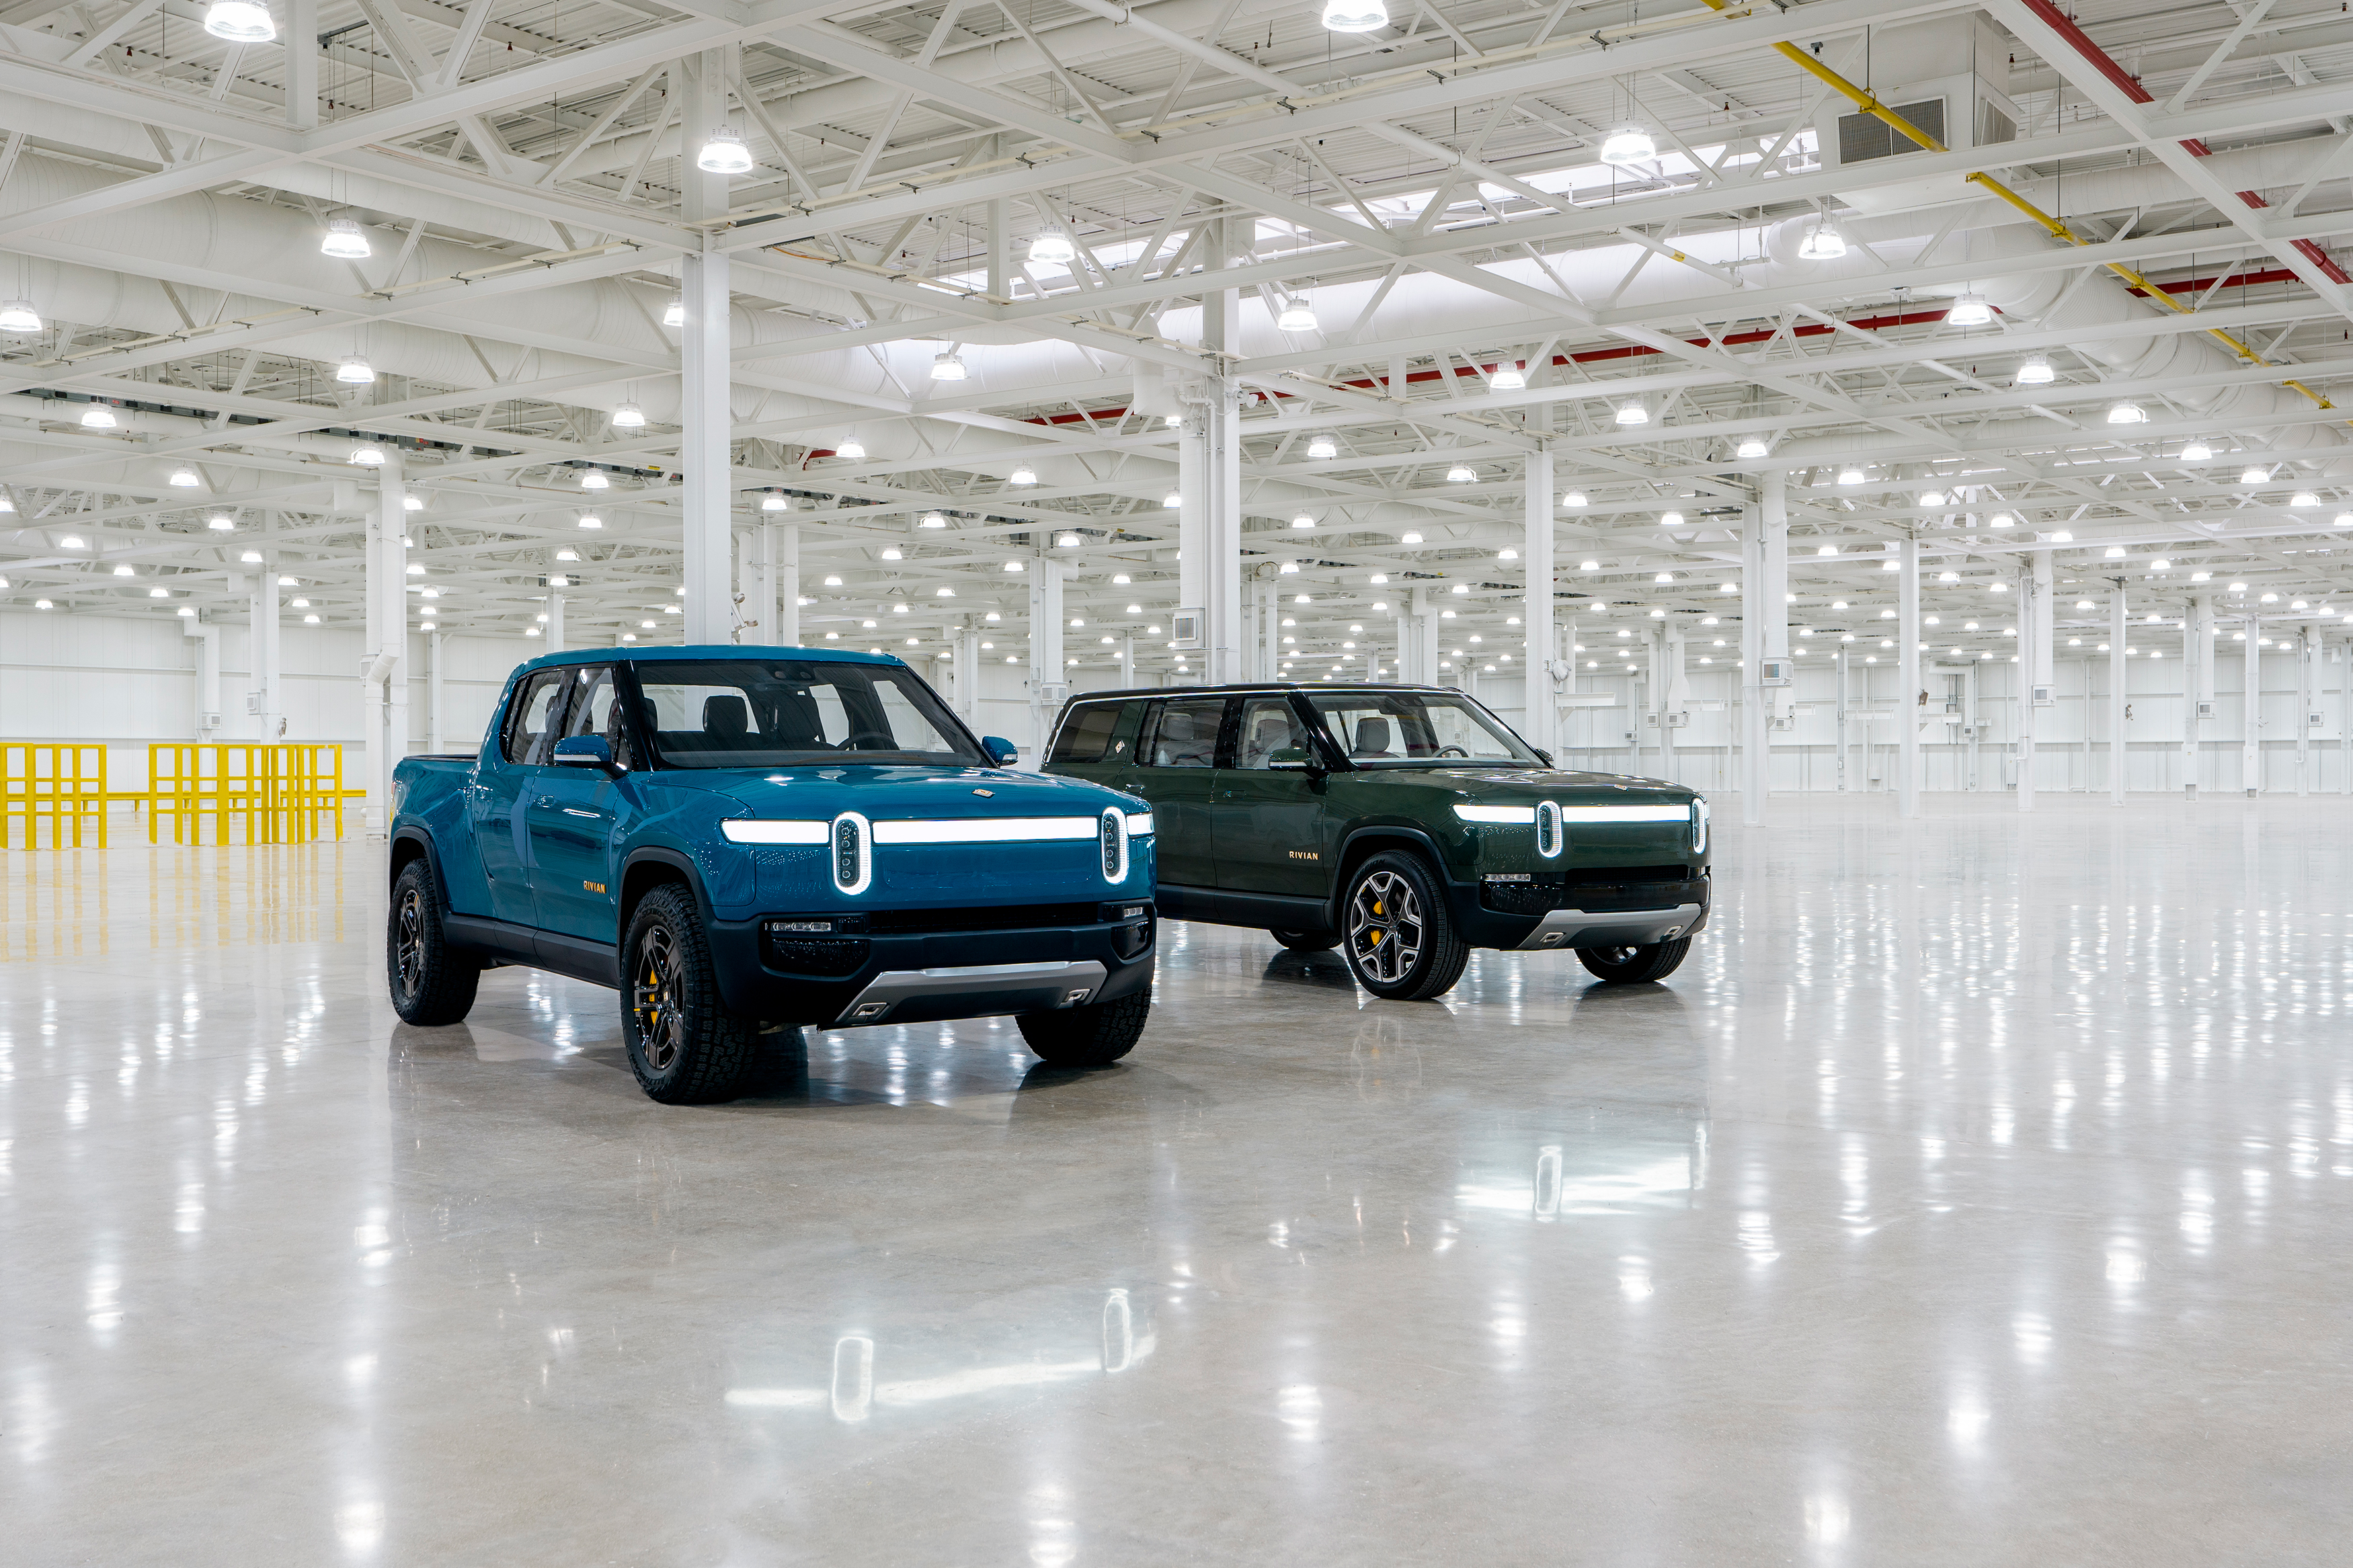 Rivian electric vehicles